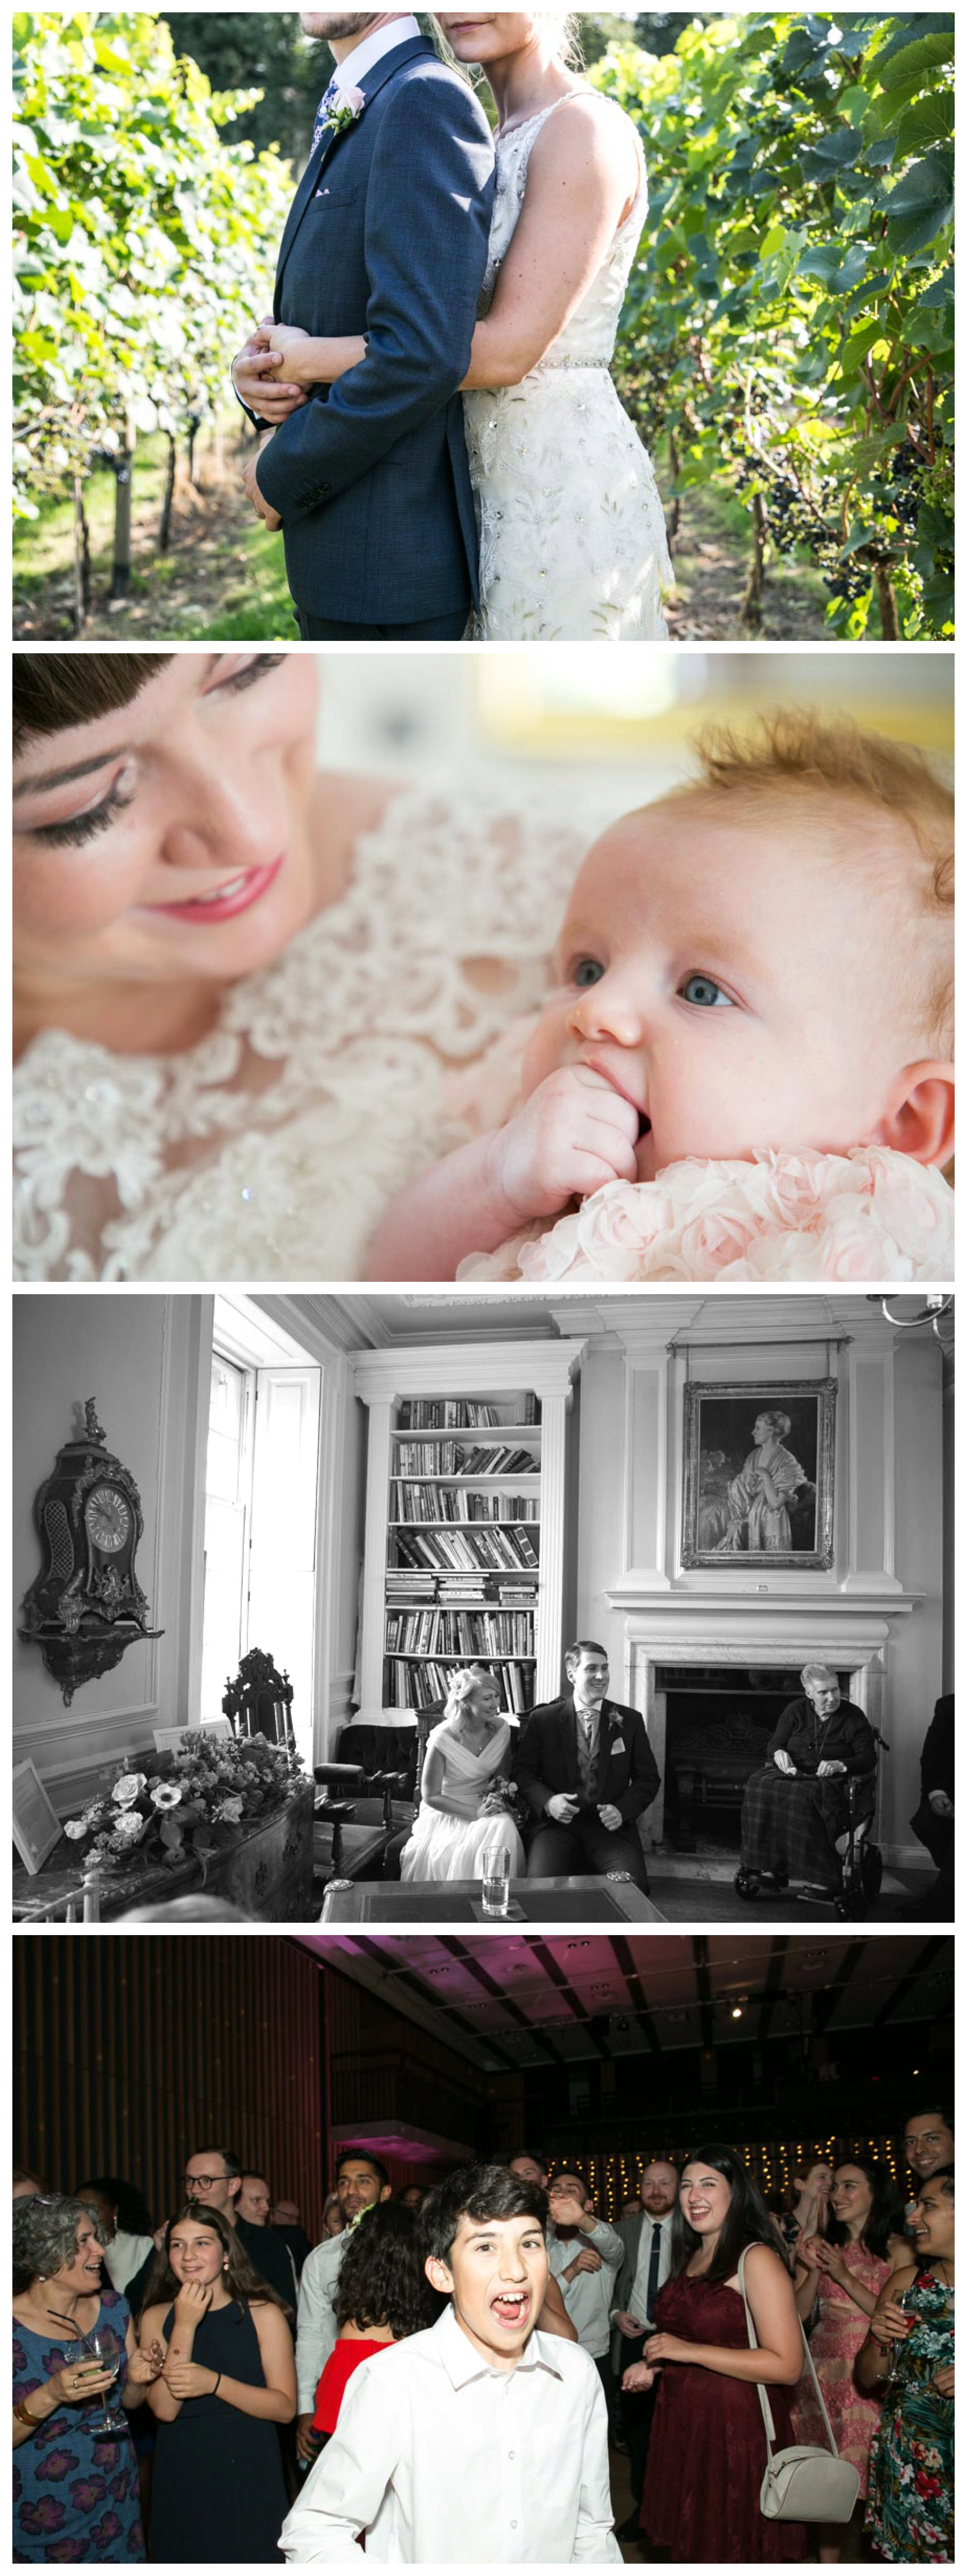 wedding portraits at vineyard in suffolk and in library at Anstey Hall Cambridge